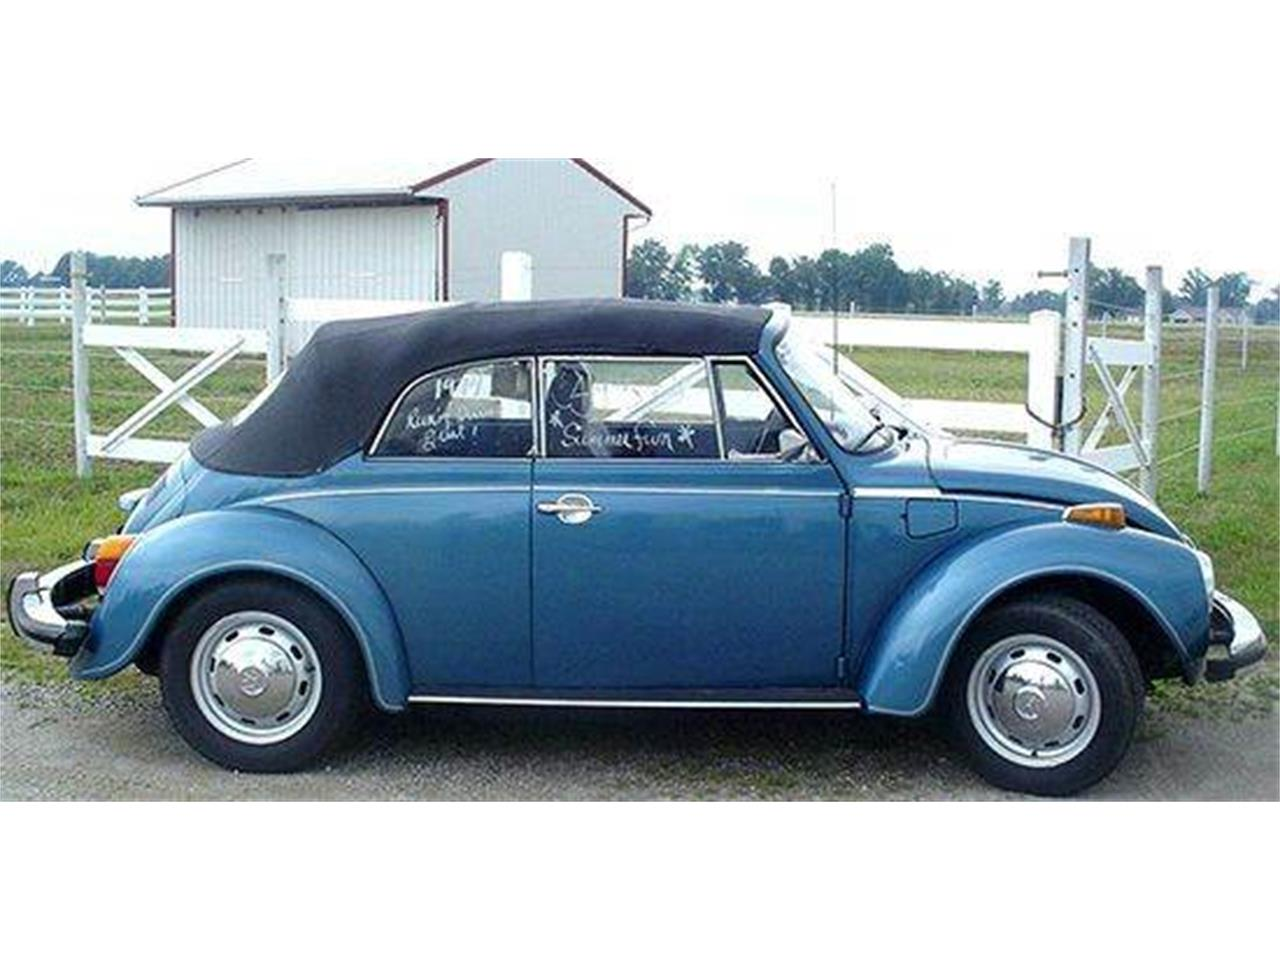 1974 Volkswagen Beetle For Sale Classiccars Com Cc 1010847